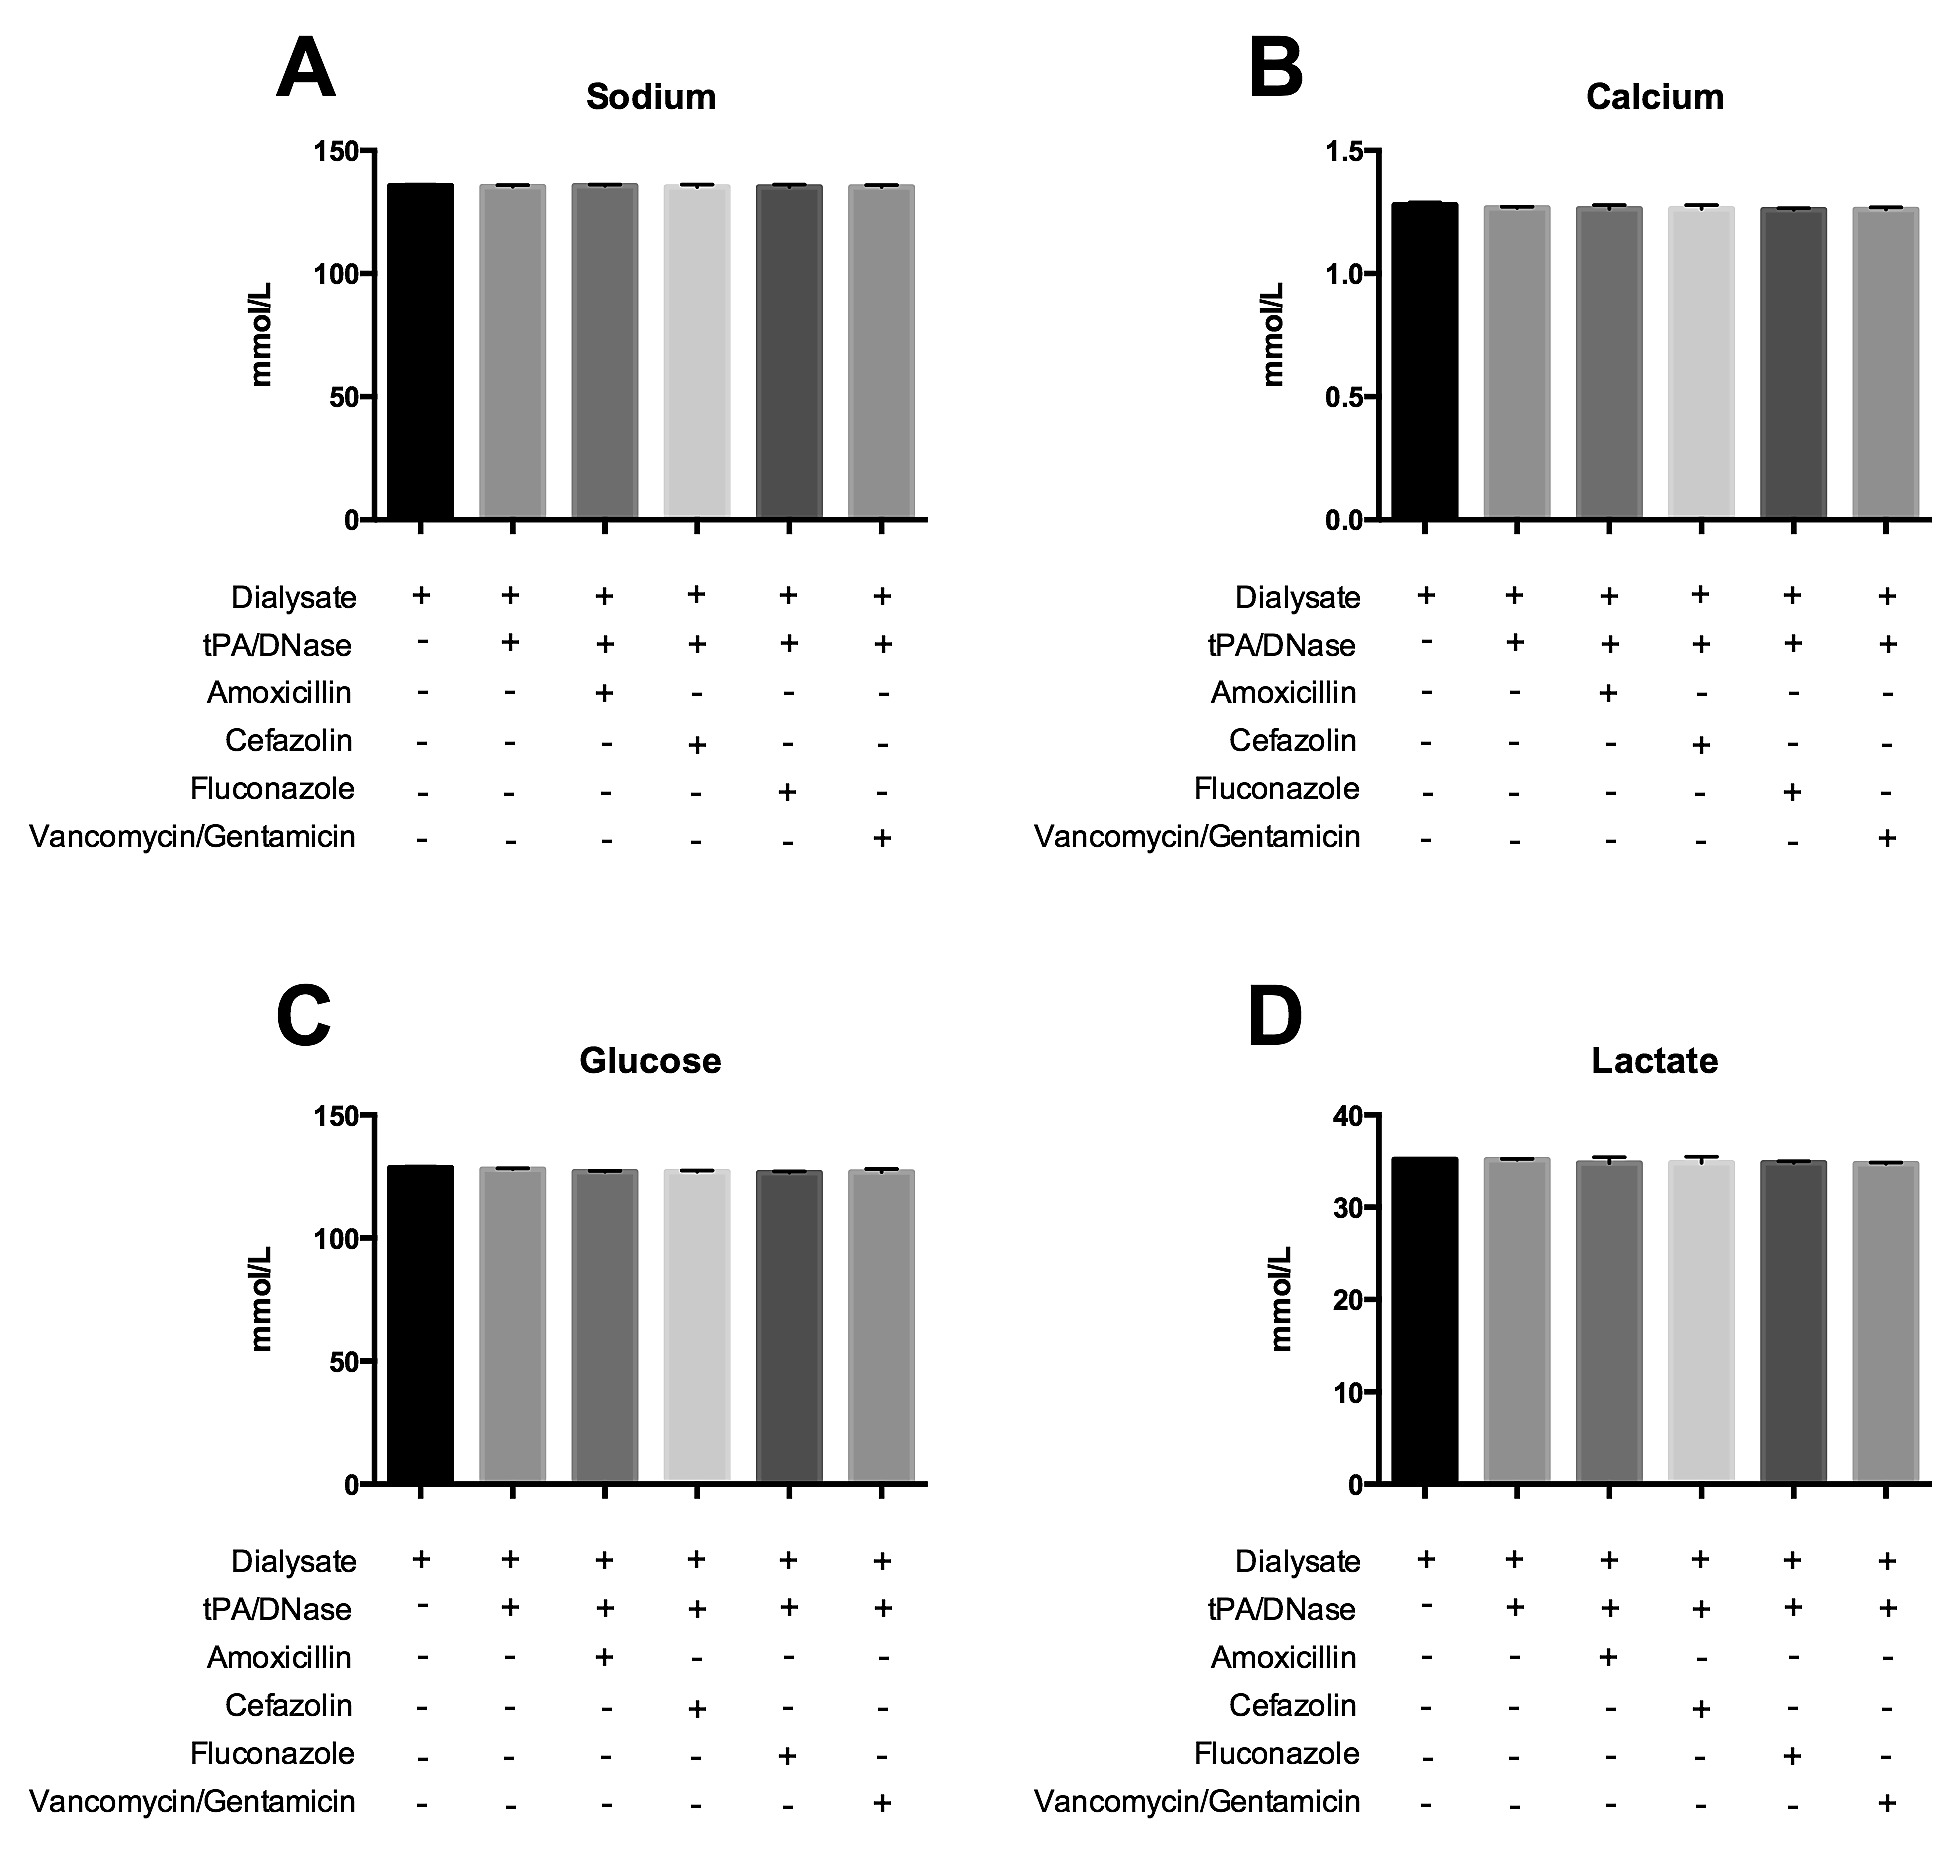 Effects Of TPA And DNase Antimicrobial Agents On Dialysate Composition